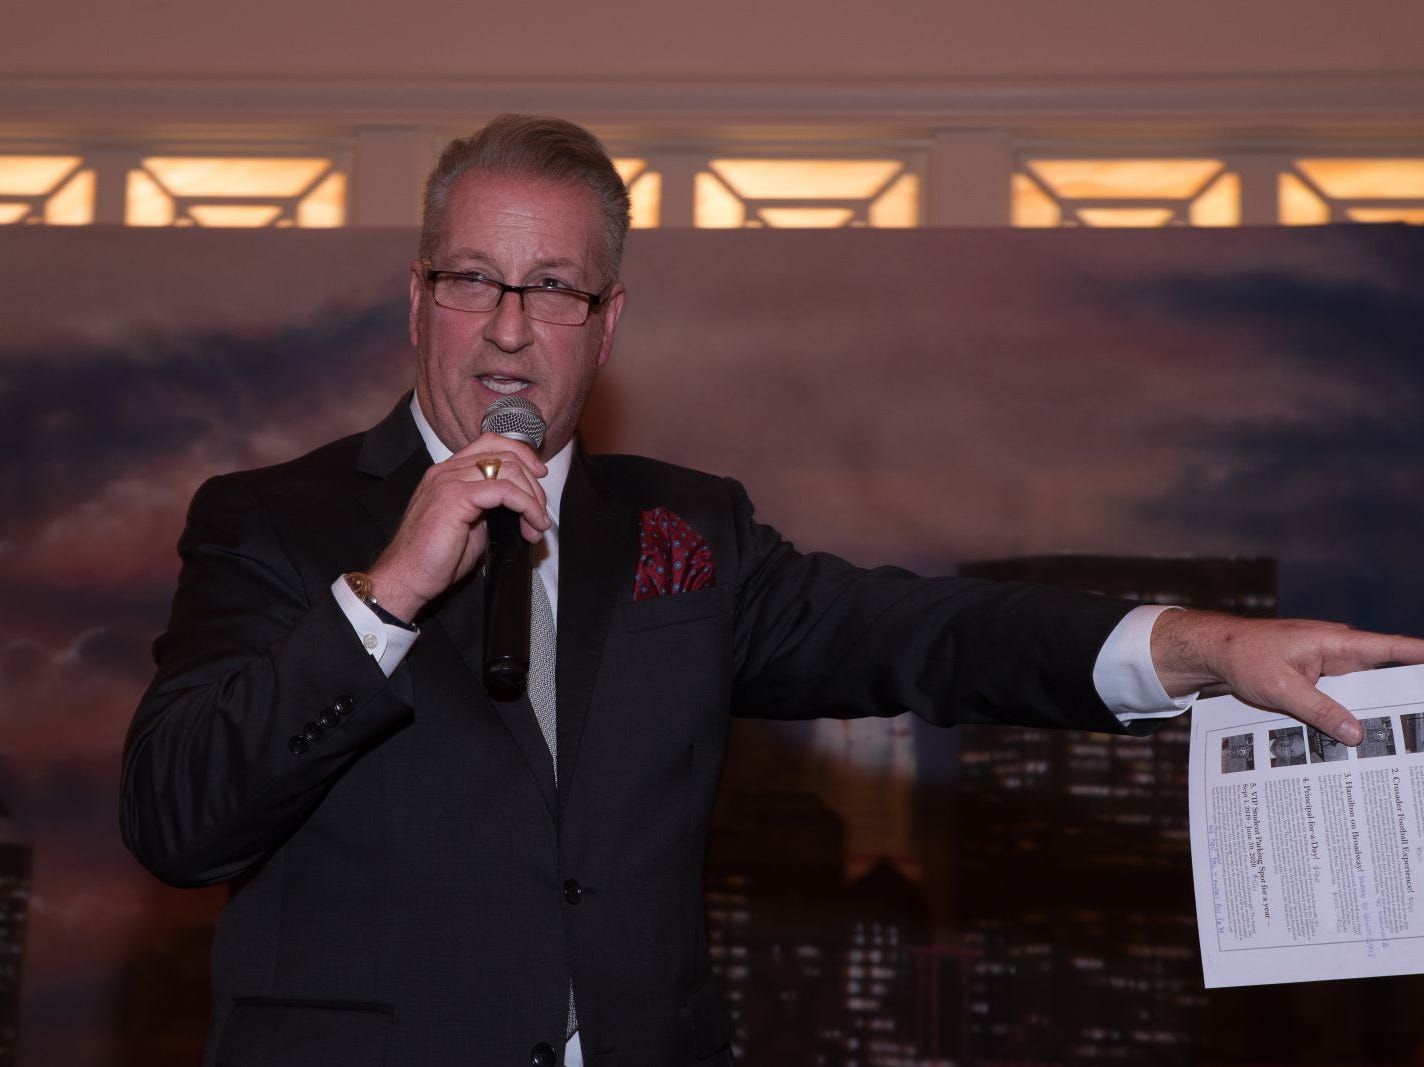 Sandy Cerami (Emcee) conducts live auction. Bergen Catholic High School celebrates their 2018 Crusader Gala at The Venetian in Garfield. 11/16/2018